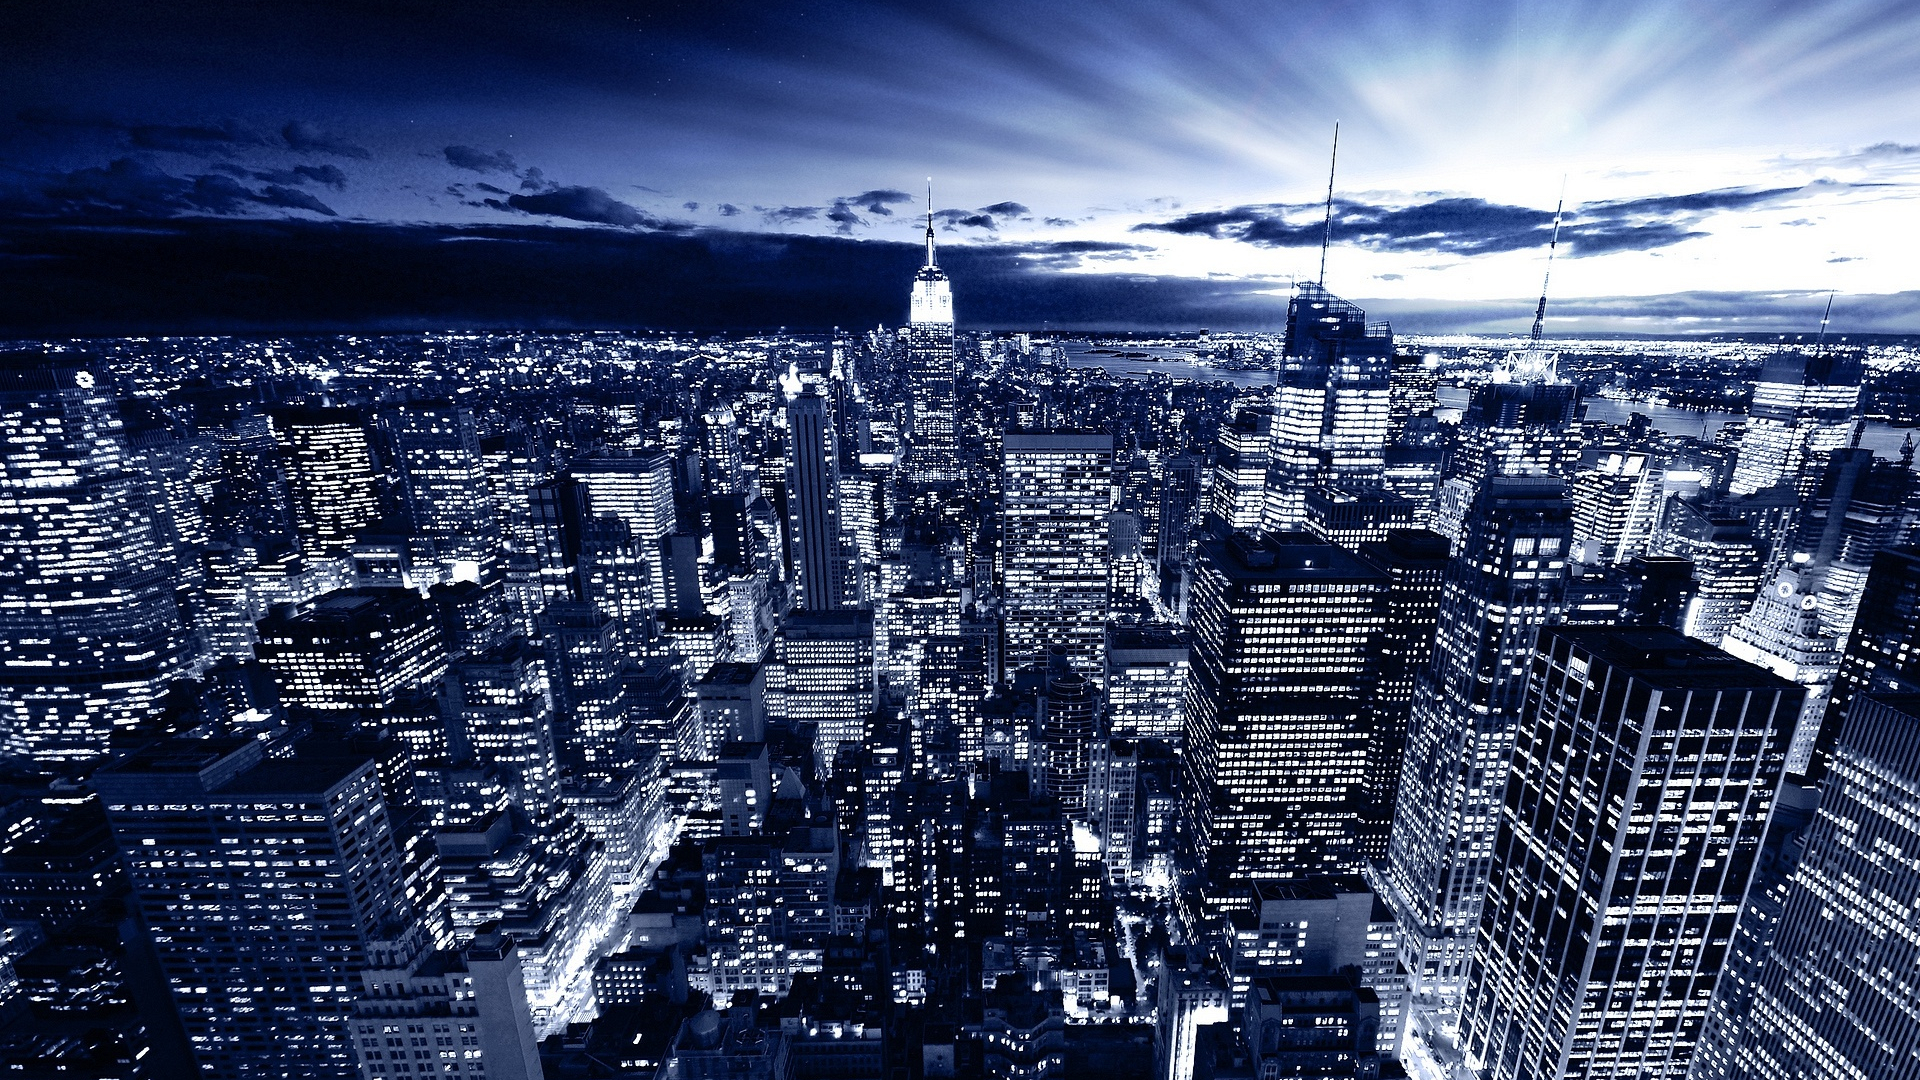 Free Download New York In Blue Wallpapers Hd Desktop Wallpapers 1920x1200 For Your Desktop Mobile Tablet Explore 75 New York Wallpaper Desktop New York Wallpapers New York City Wallpaper